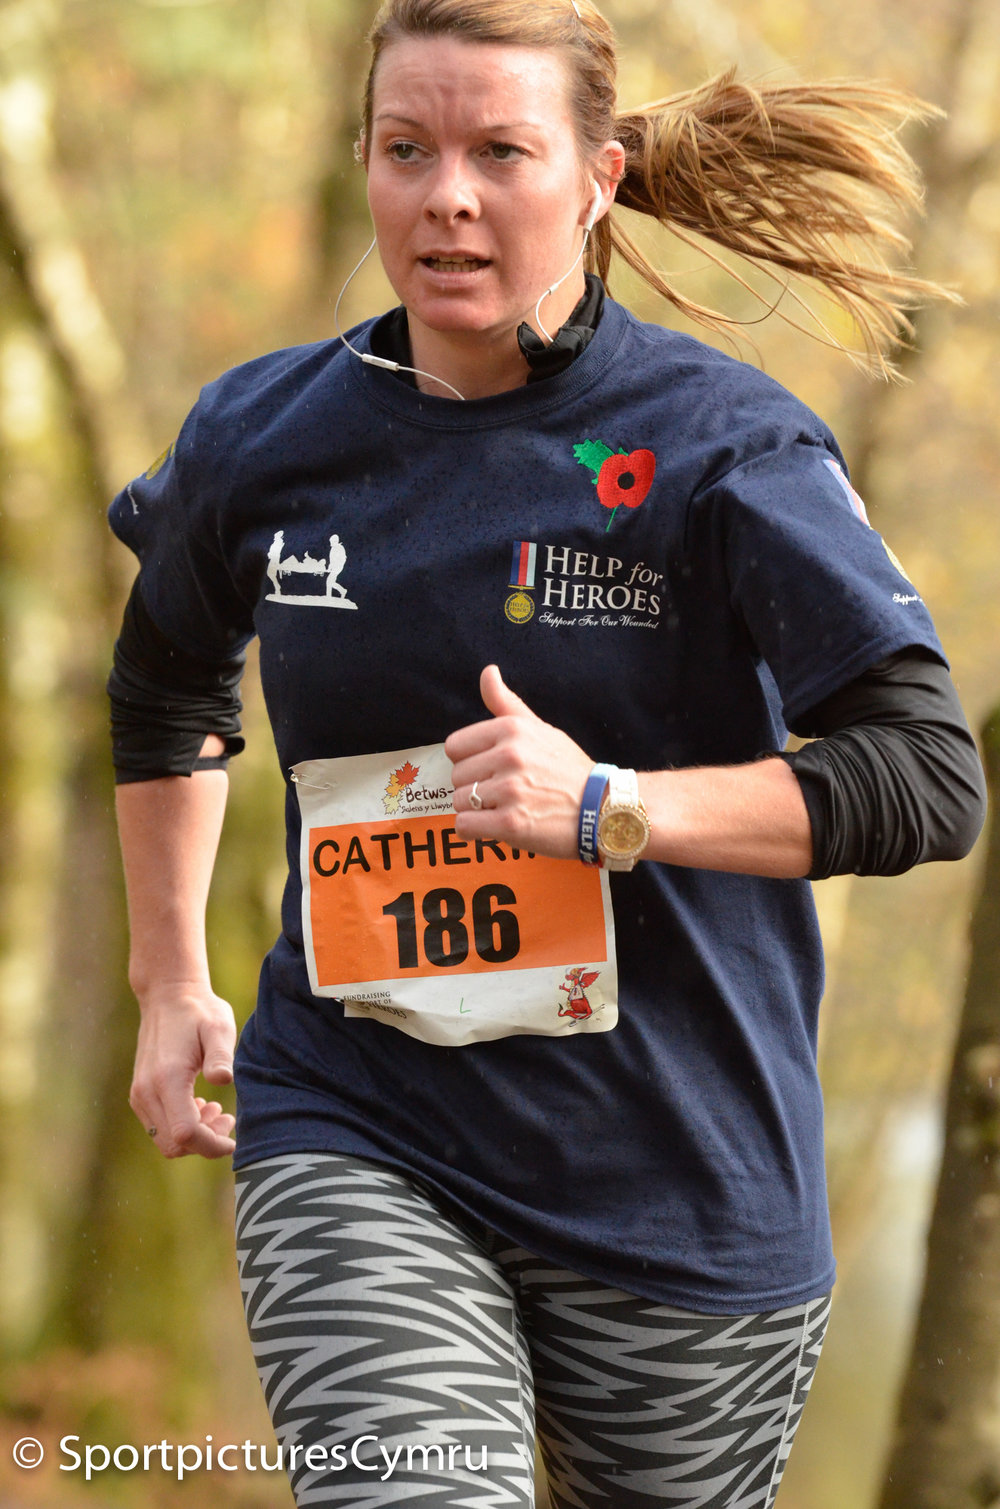 Lady running betws y coed trail challenge for Help for Heroes